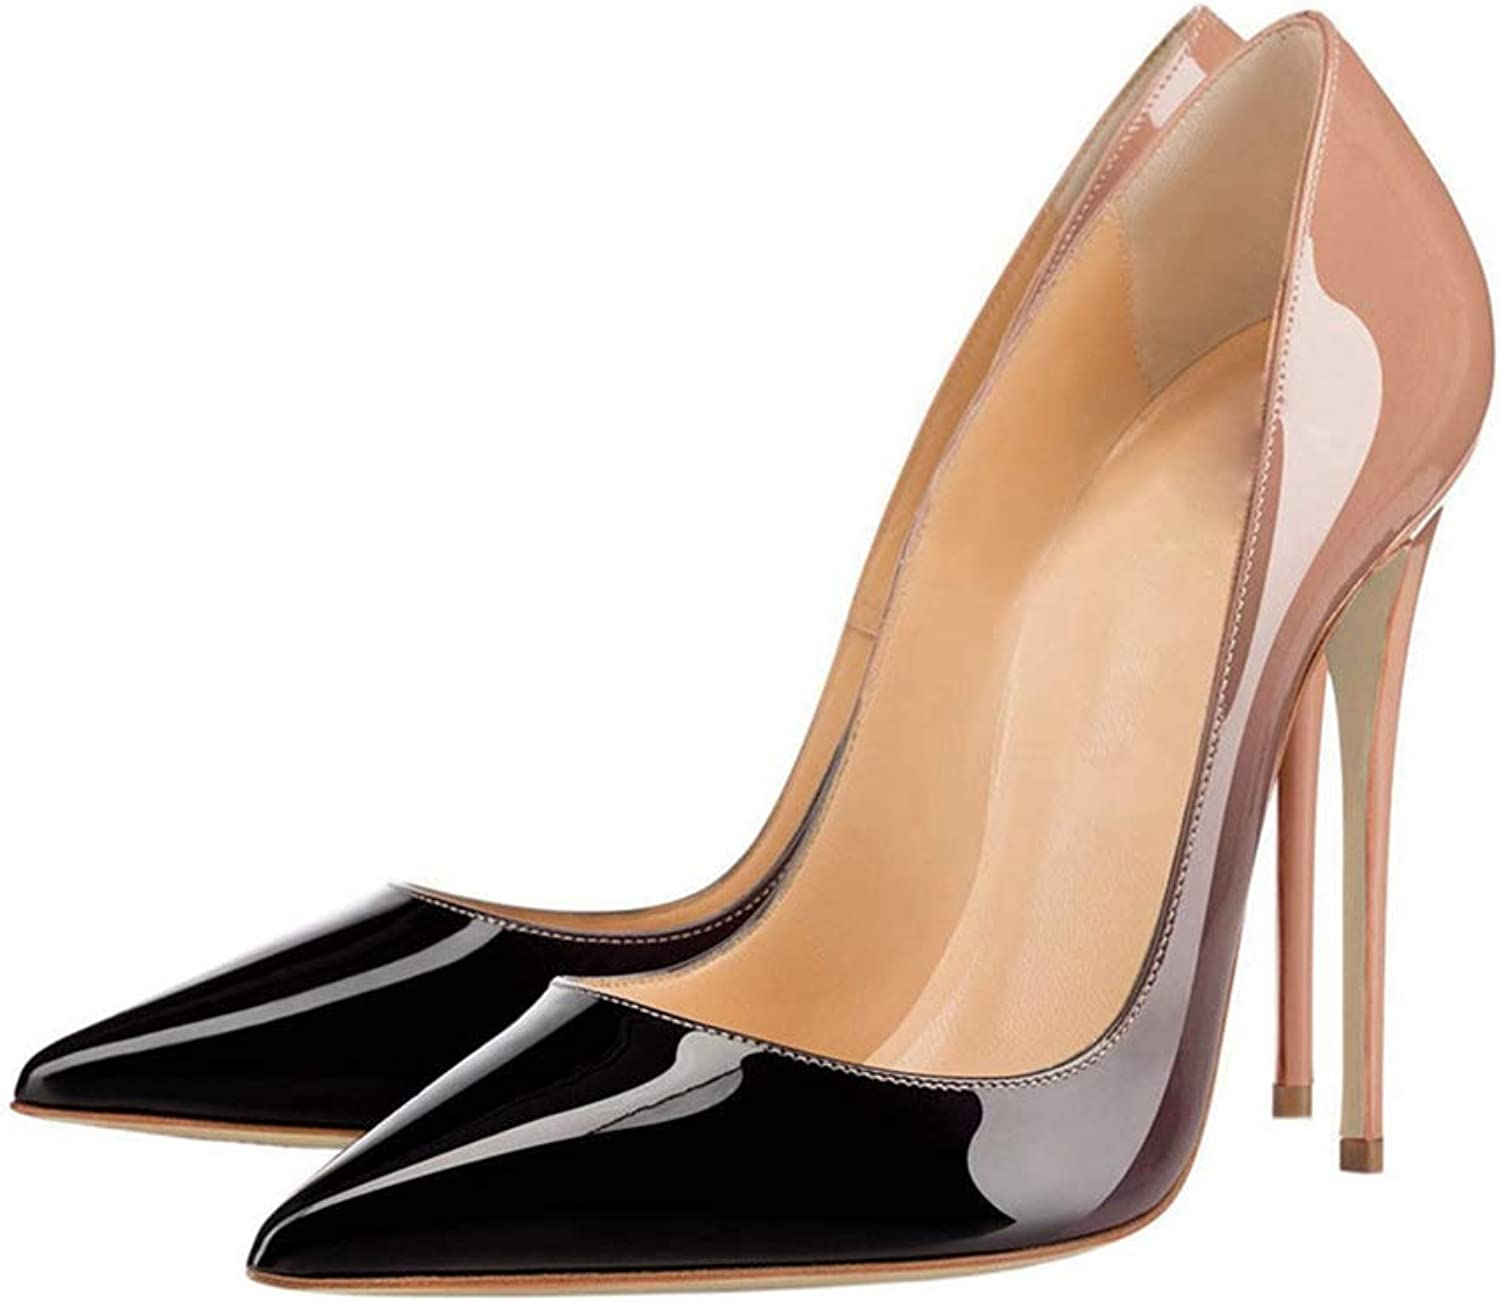 Stiletto Sandals Women Outdoor Pointed Toe Slip-on Ladies Party High Heels Sandal